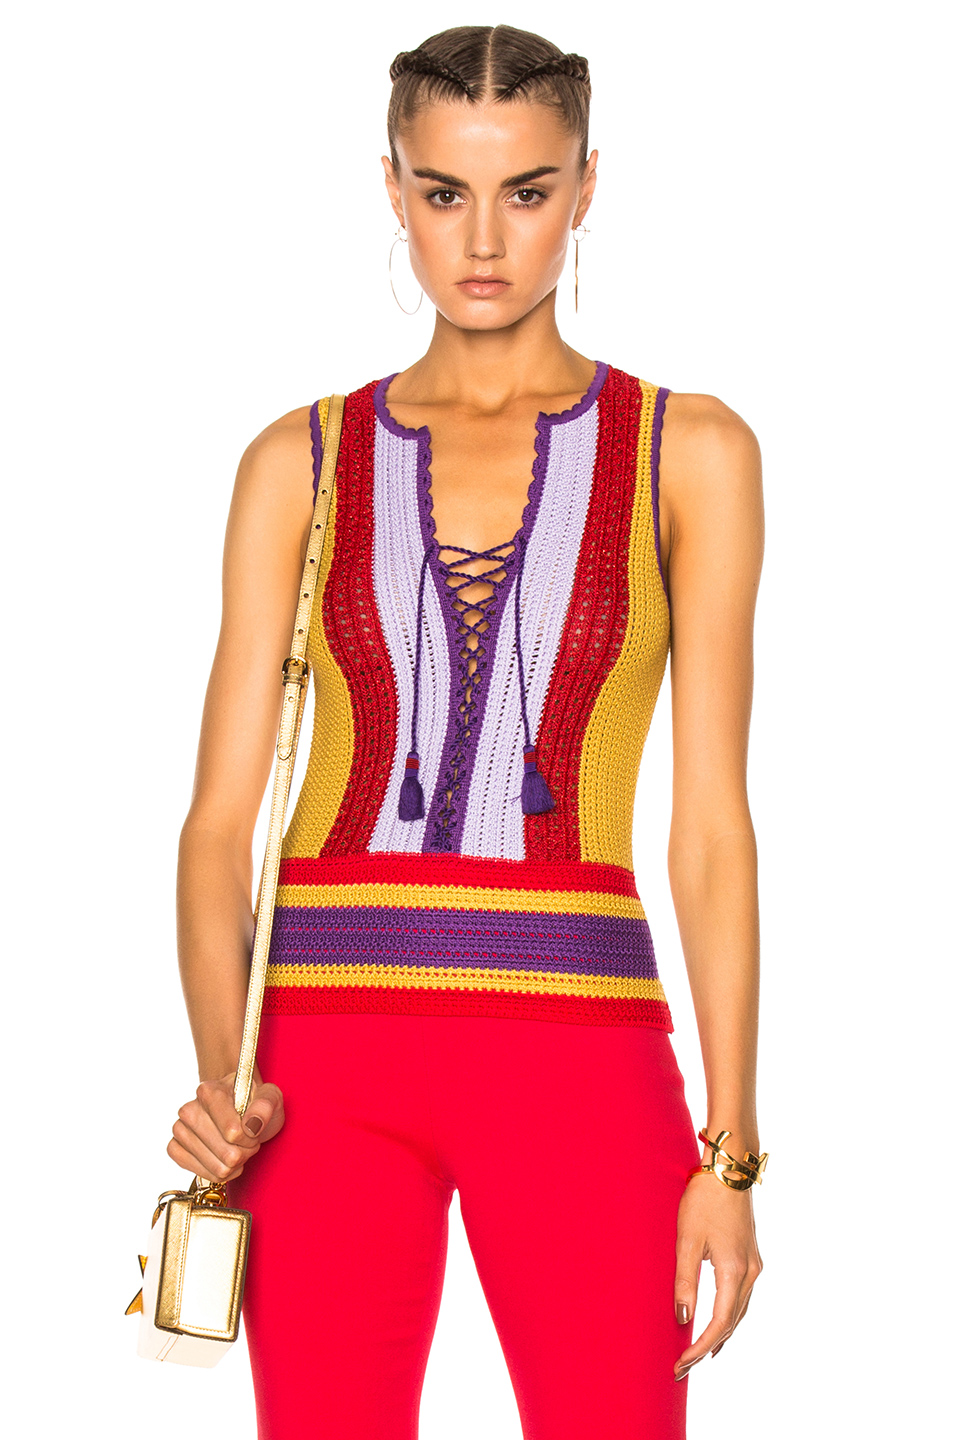 Roberto Cavalli Lace Up Top in Abstract,Red,Purple,Yellow